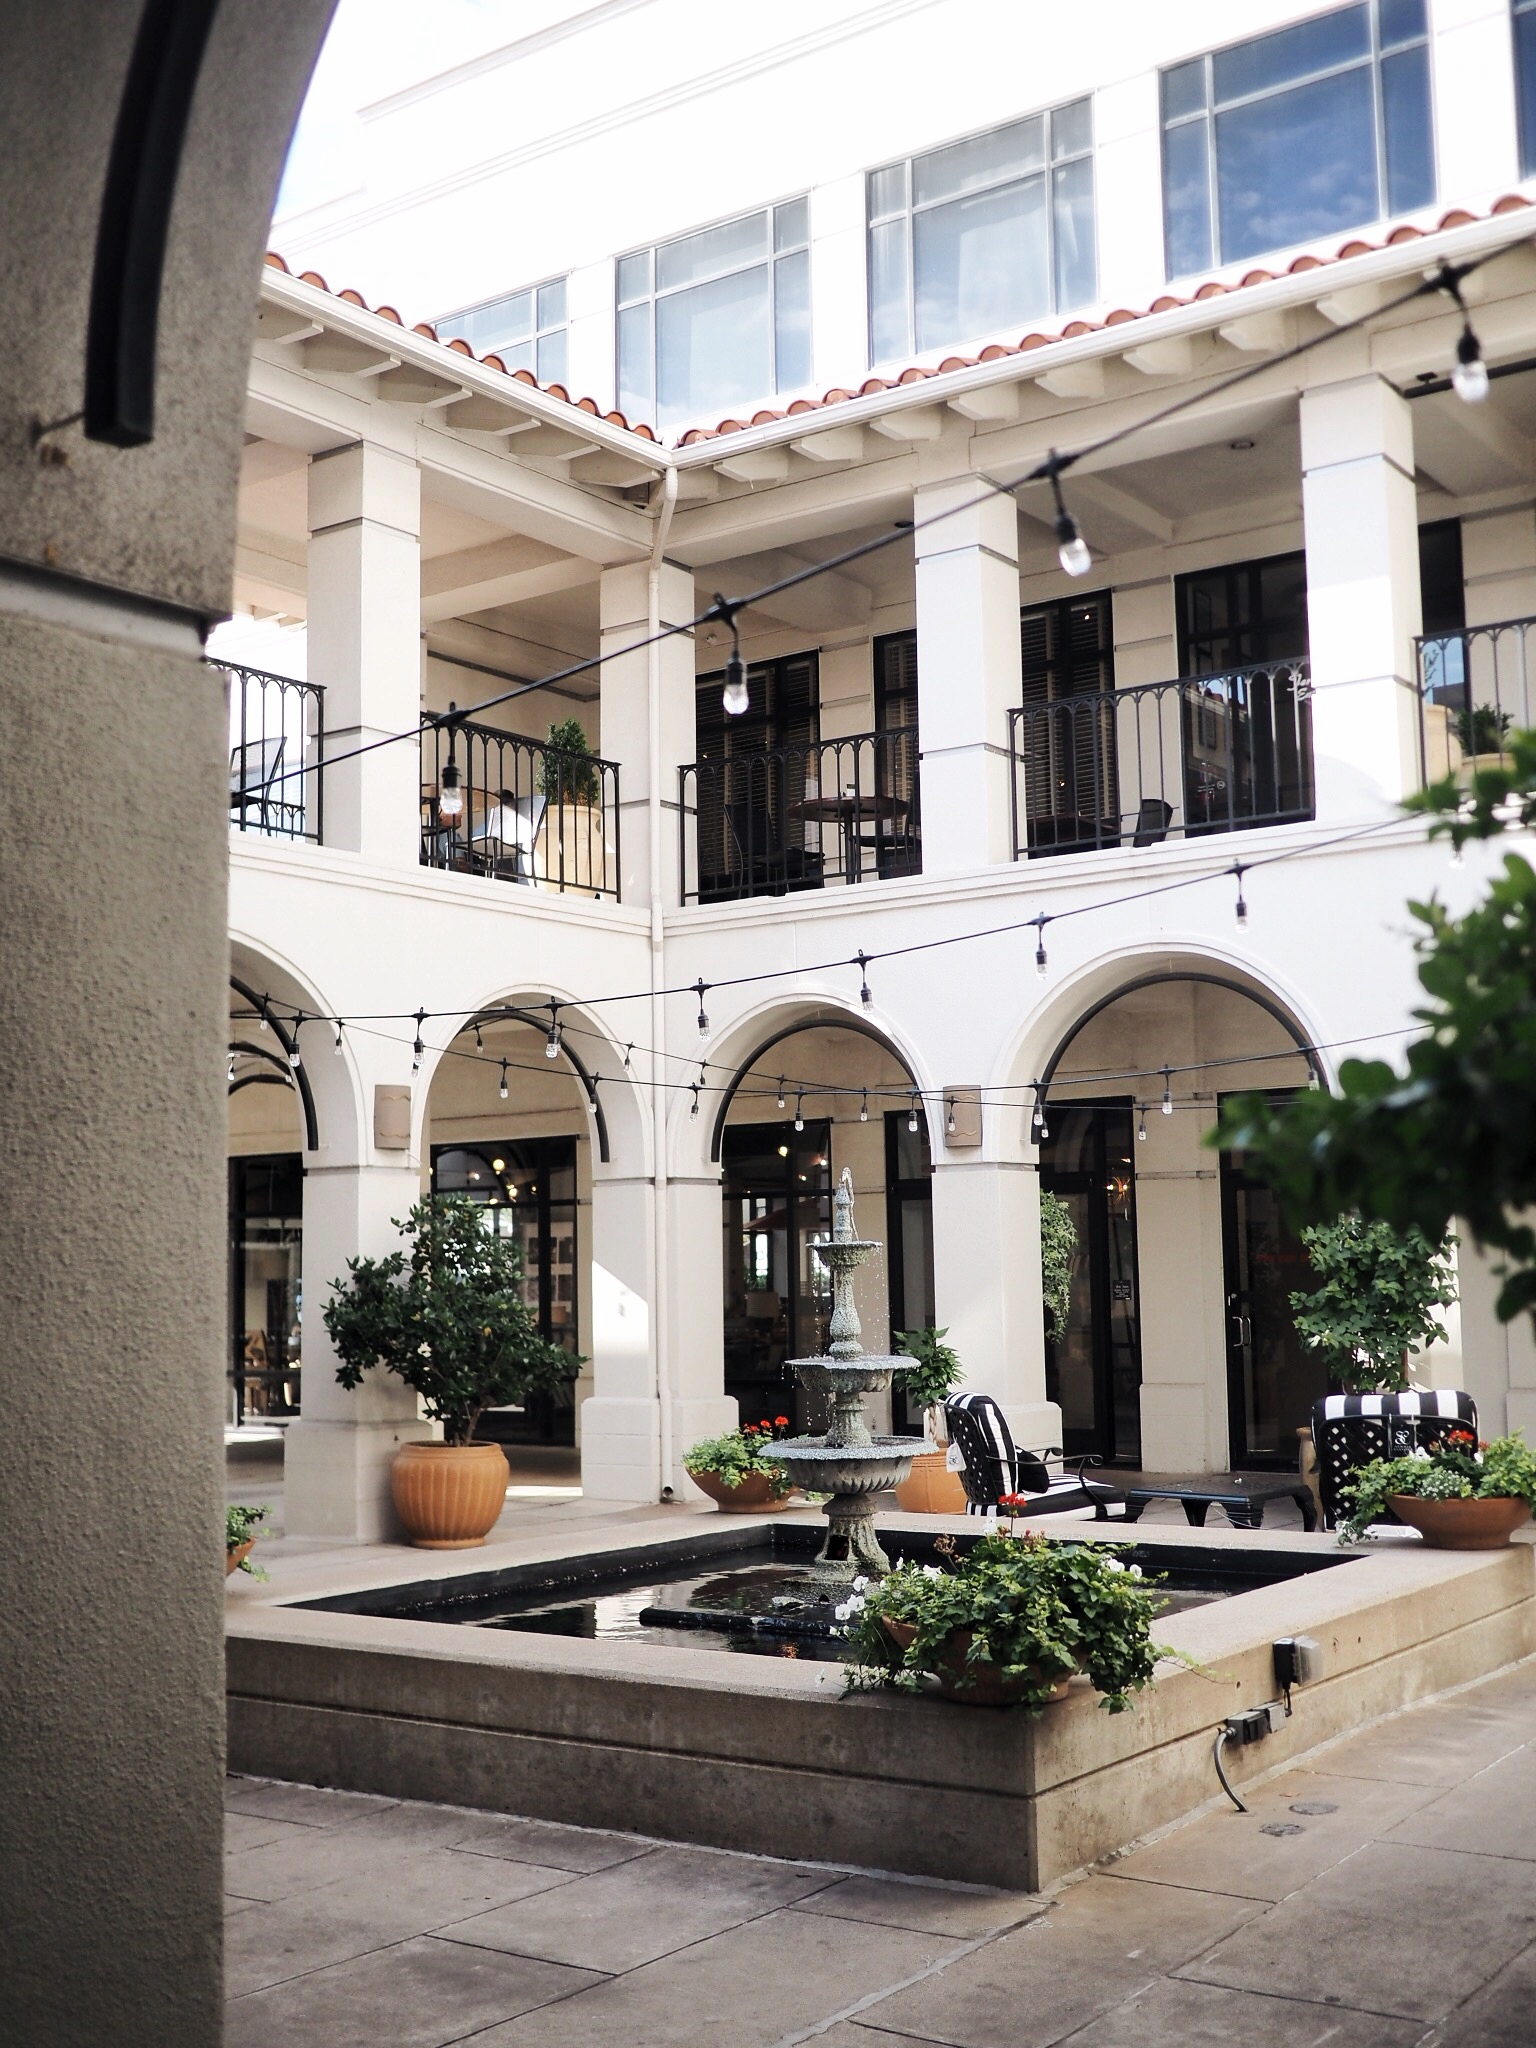 RIVIERA SPA DALLAS - 4514 TRAVIS ST #105, DALLAS, TX 75205